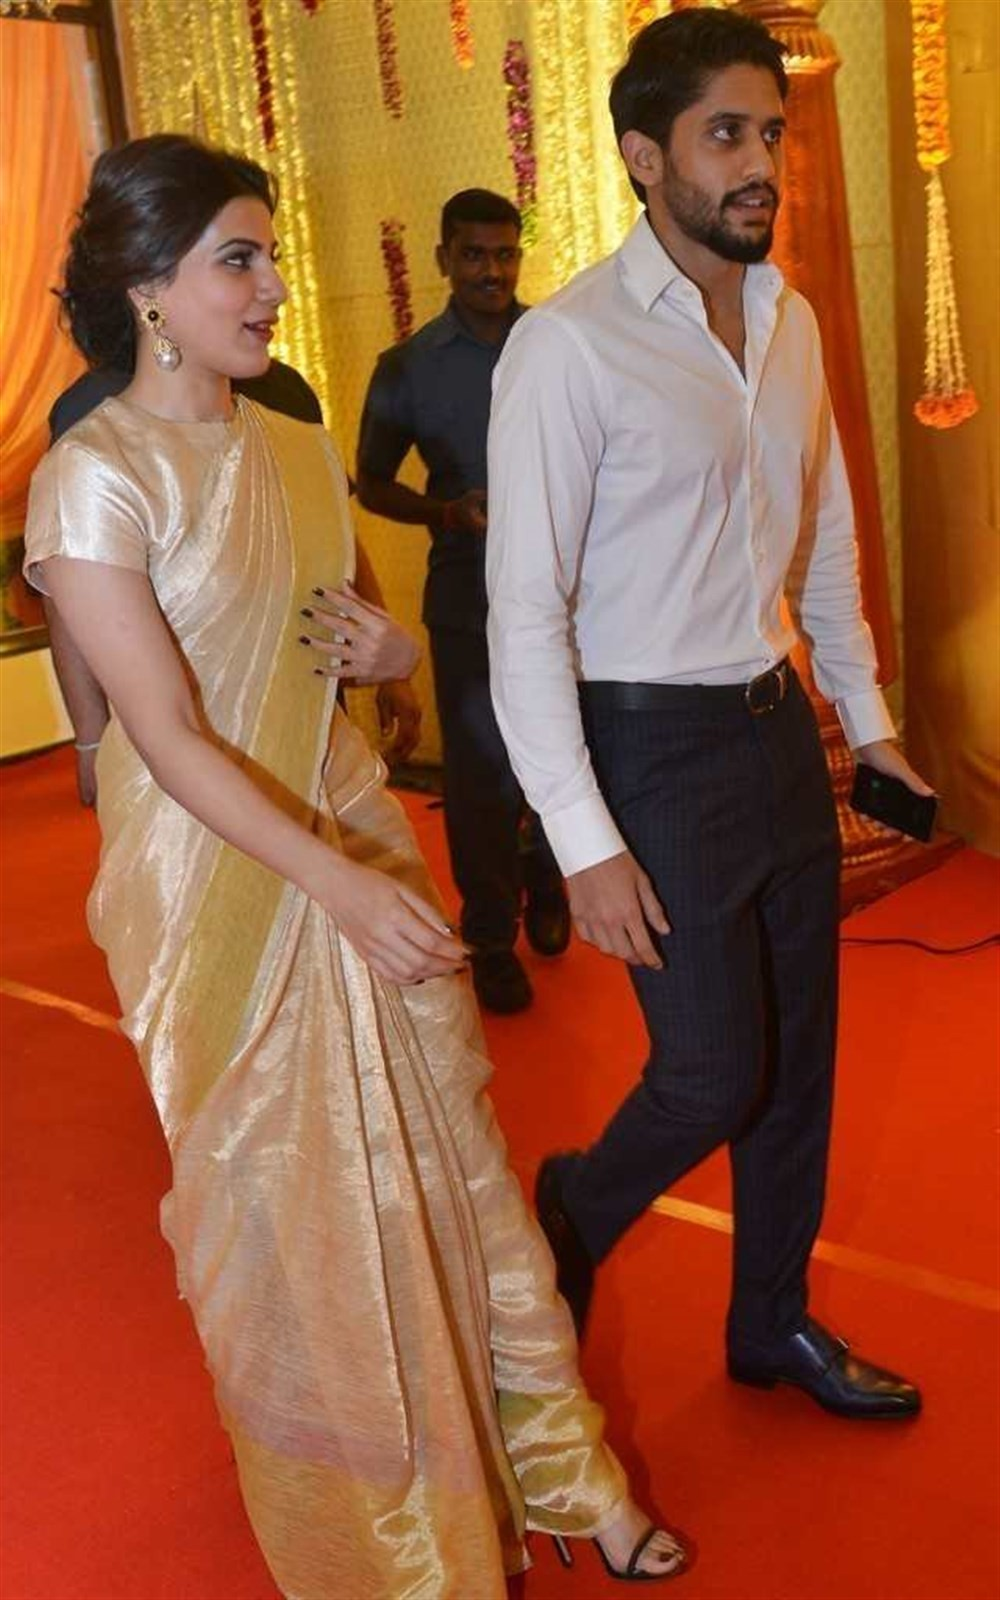 Samantha and Naga Chaitanya,Naga Chaitanya and Samantha,Naga Chaitanya Samantha,Nimmagadda Prasad Daughter wedding,Nimmagadda Prasad,Samantha with Naga Chaitanya,Naga Chaitanya with Samantha